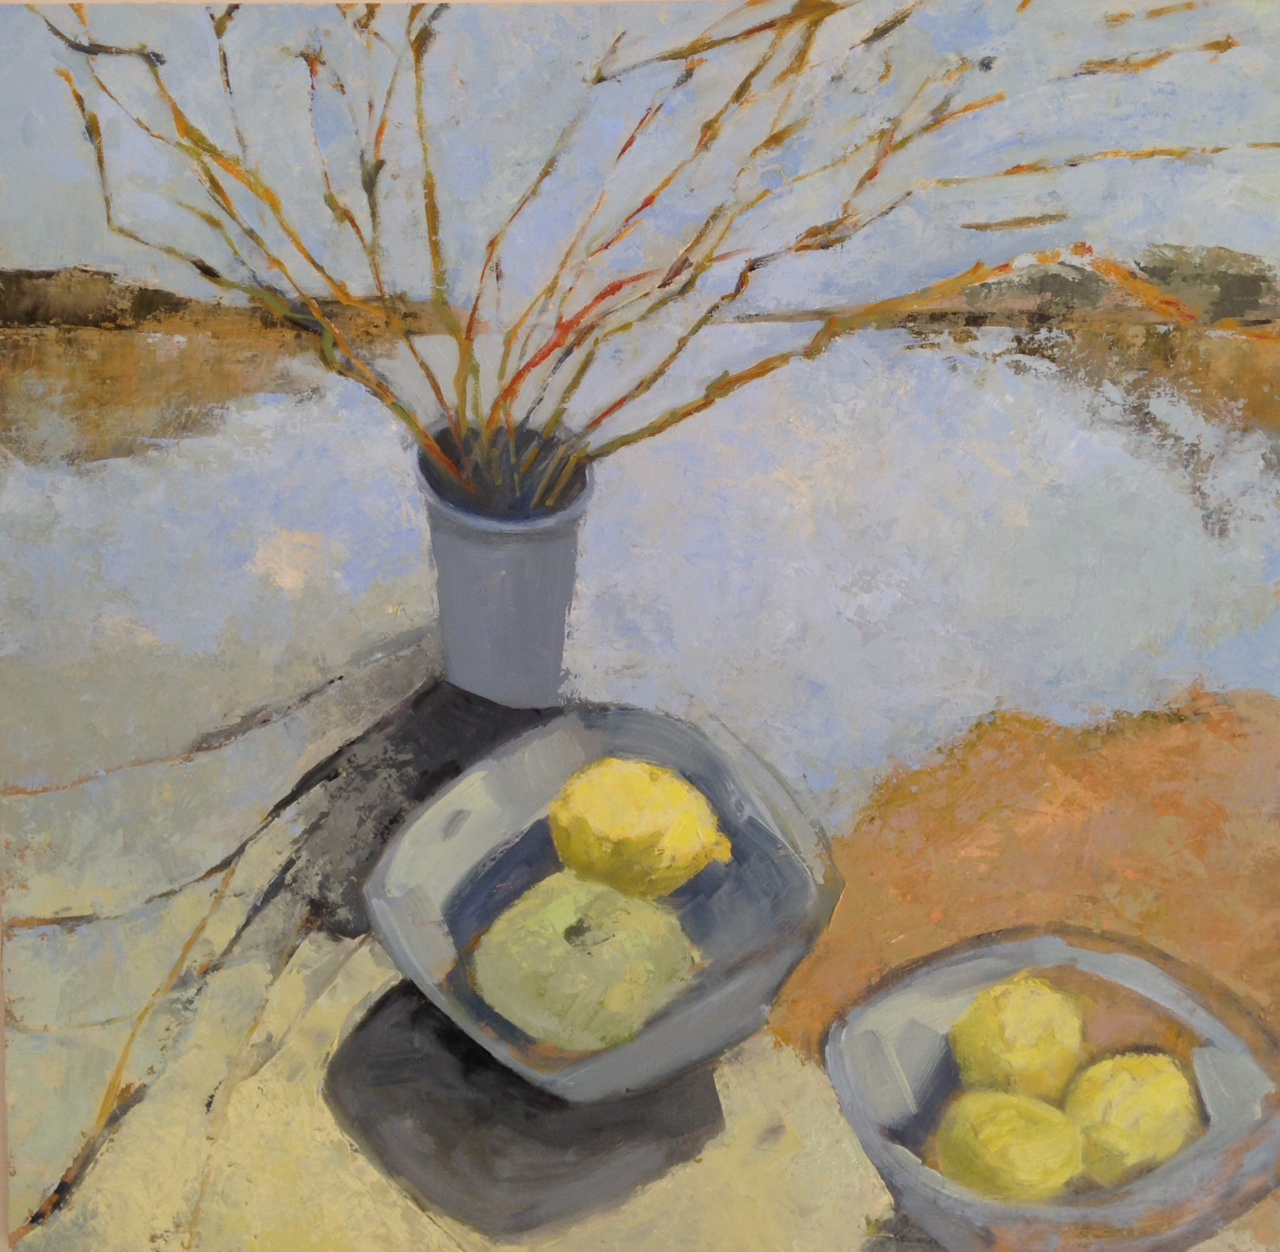 Still Life with Lemons and More